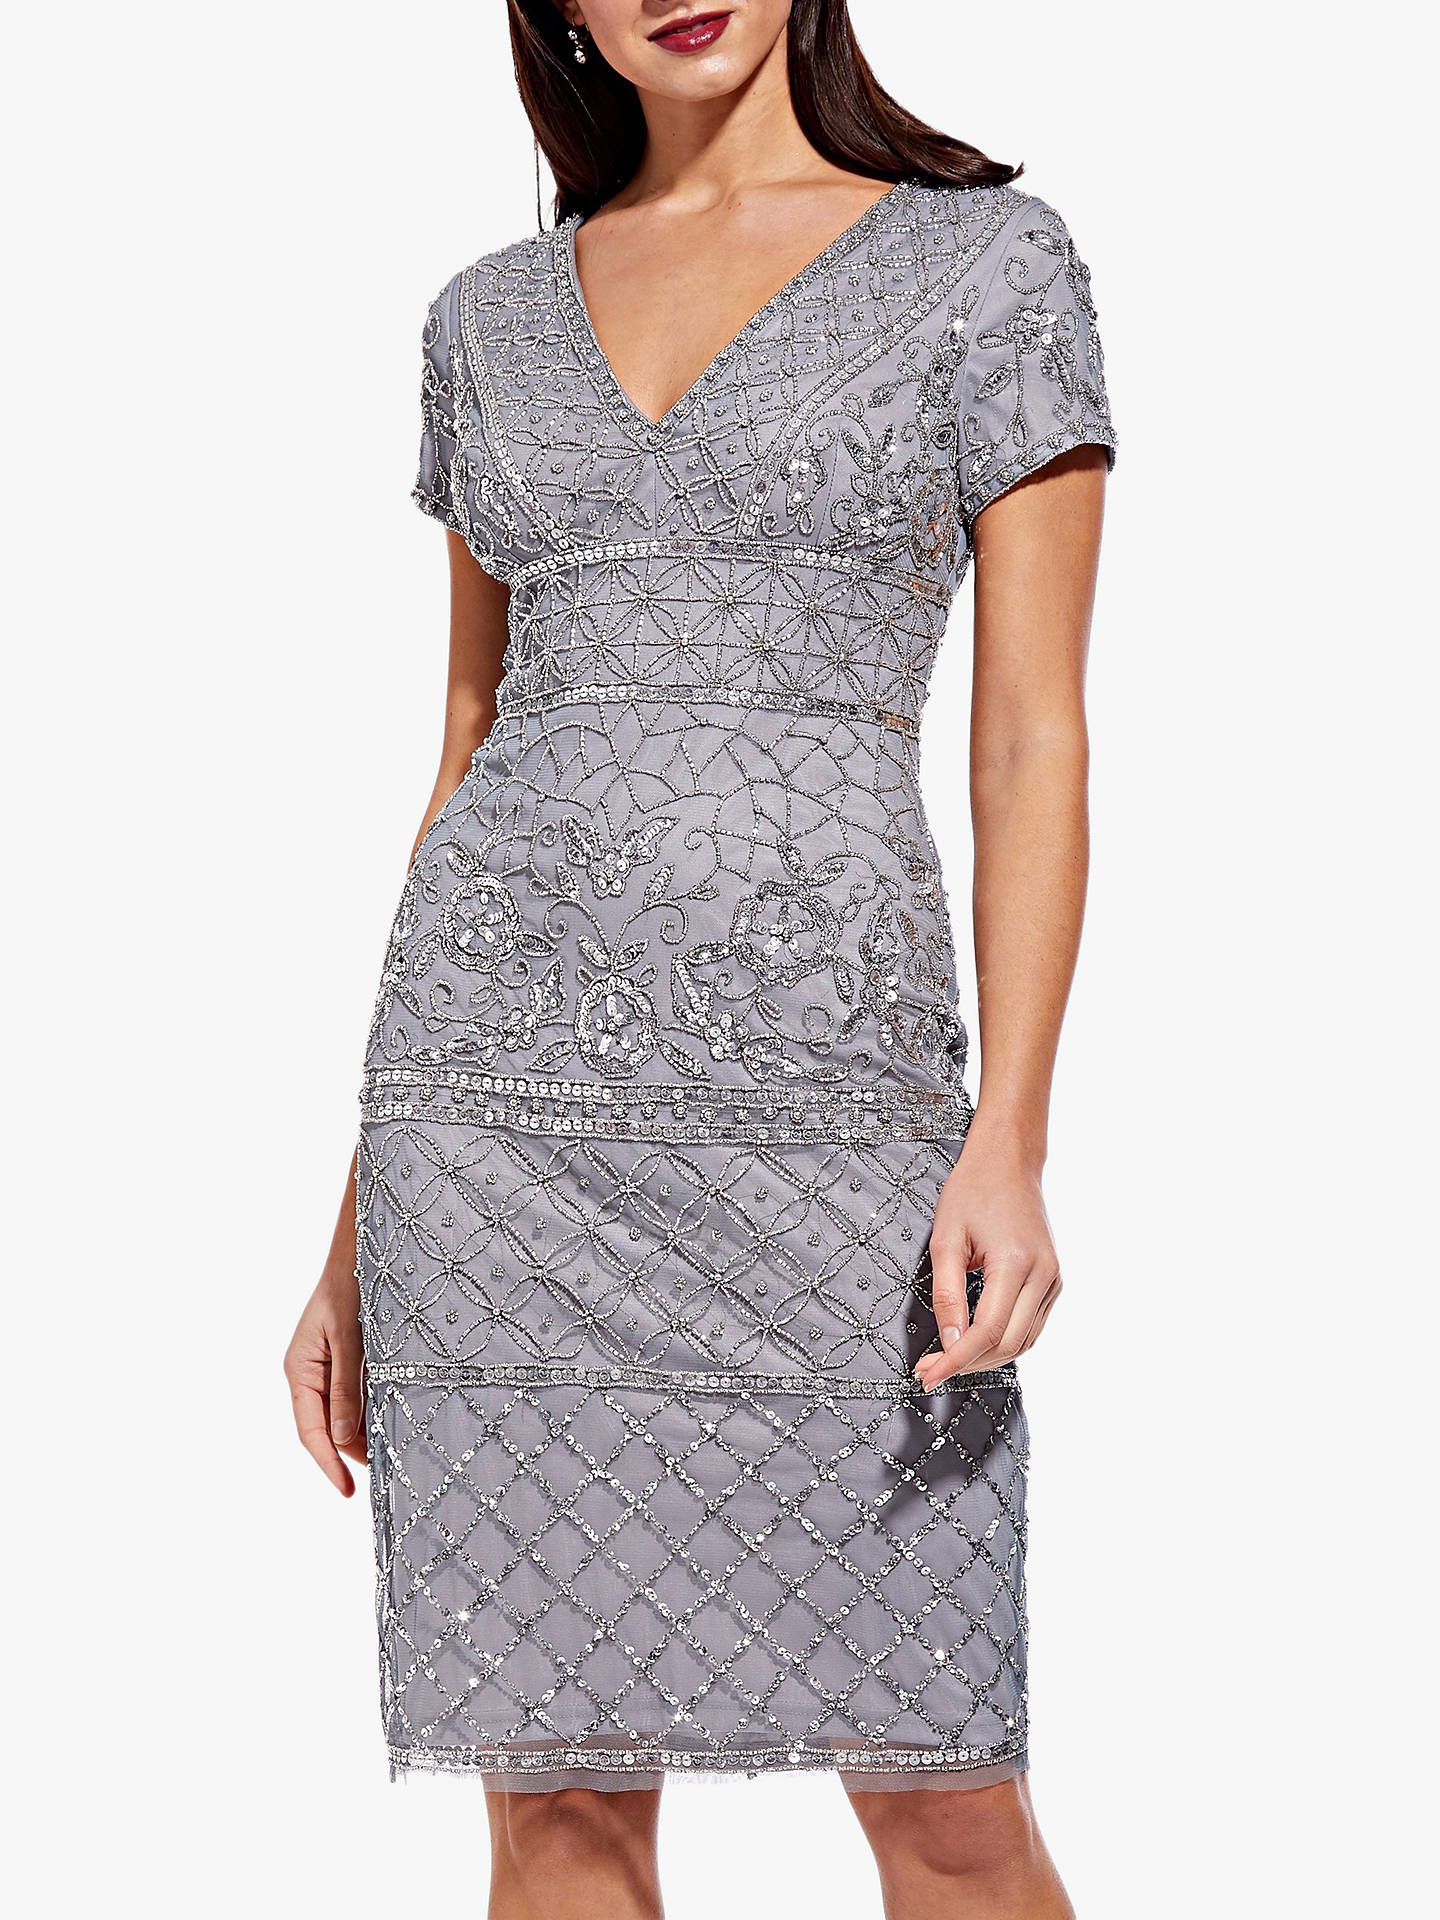 ca3001c9c Buy Adrianna Papell V-Neck Beaded Cocktail Dress, Slate, 8 Online at  johnlewis ...